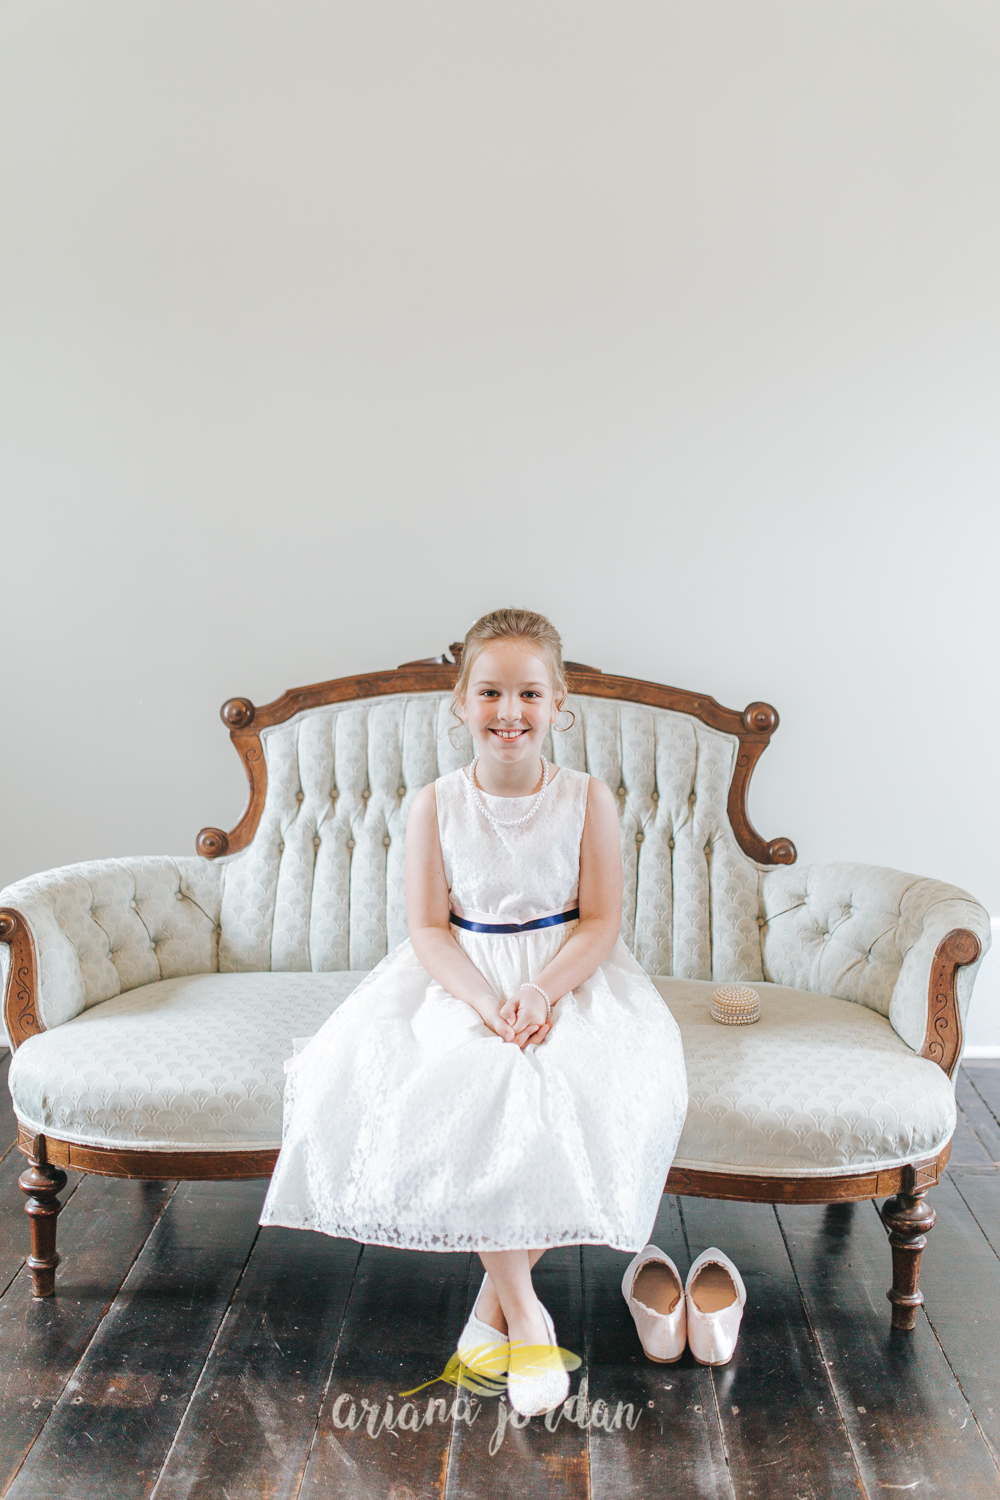 062 - Ariana Jordan - Kentucky Wedding Photographer - Landon & Tabitha 6237.jpg